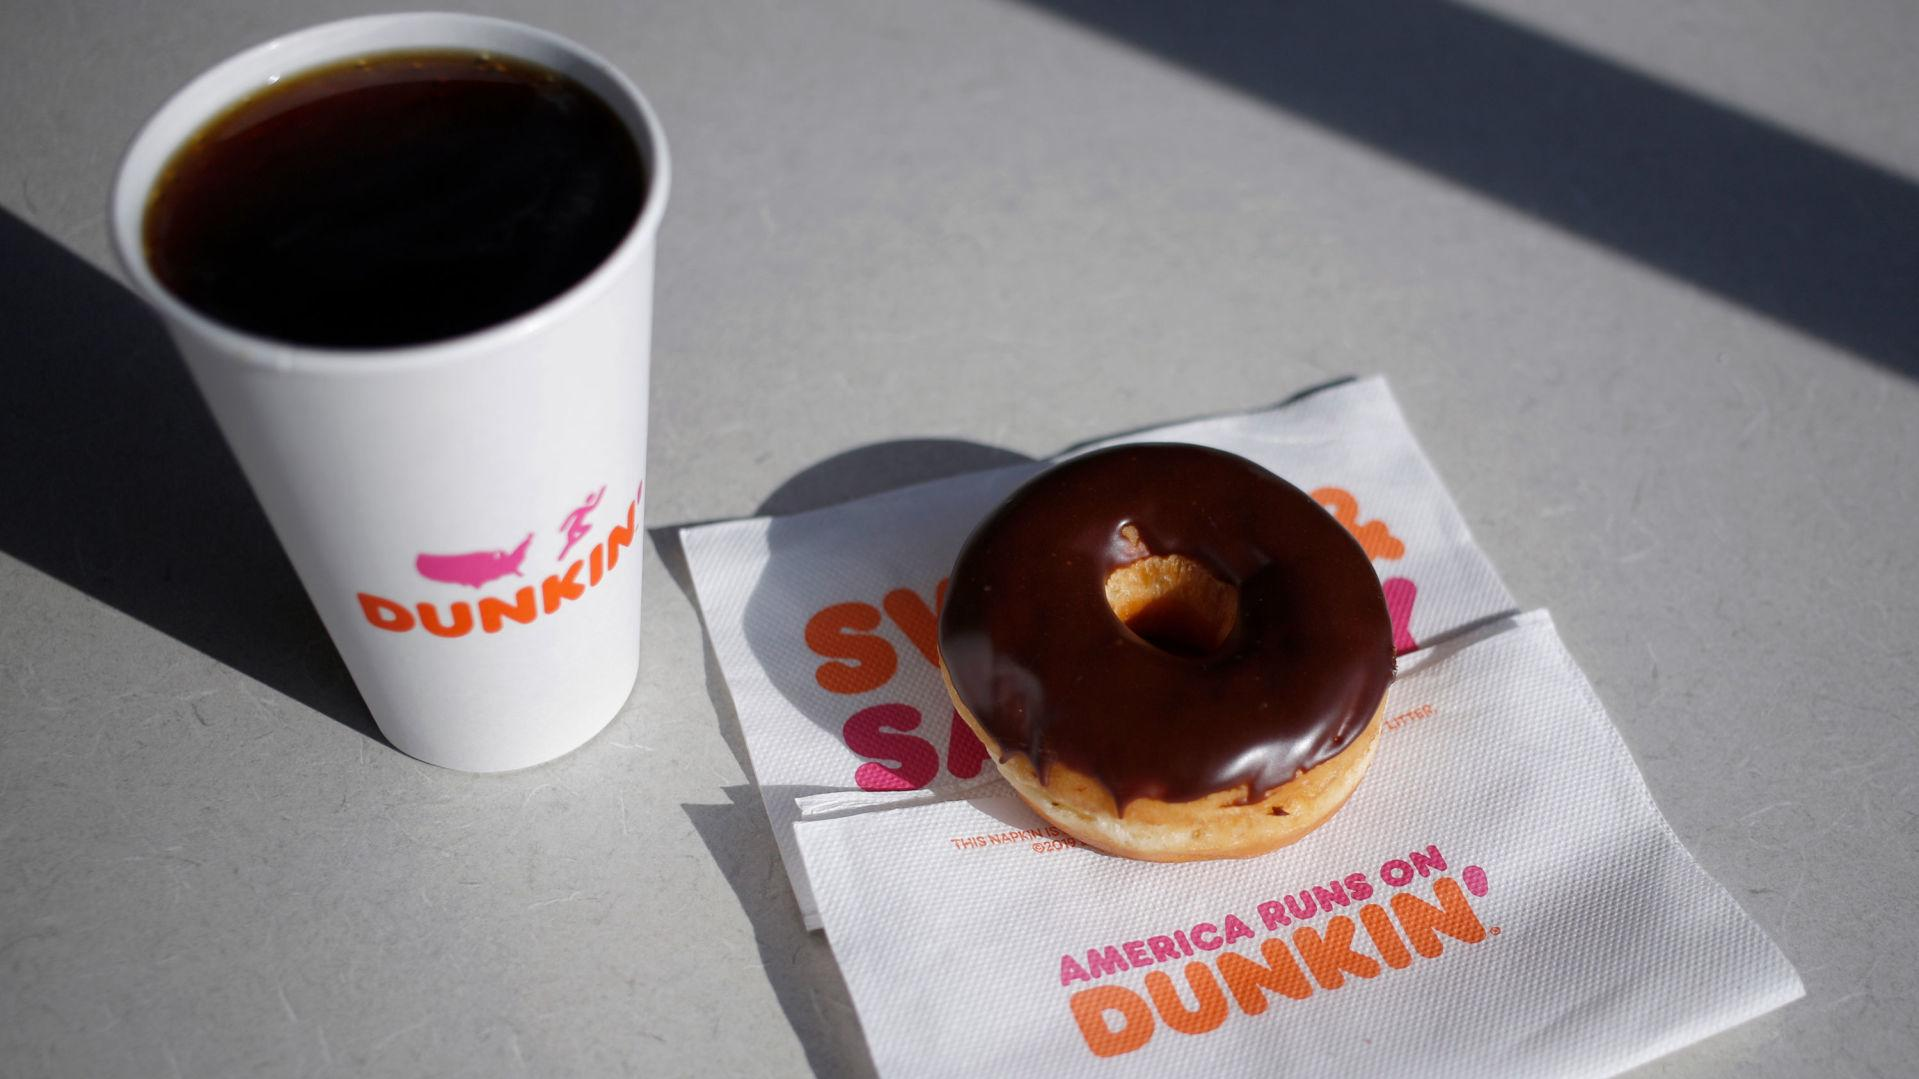 Here's how you can get free doughnuts every Friday in March |  Food-and-cooking | trib.com